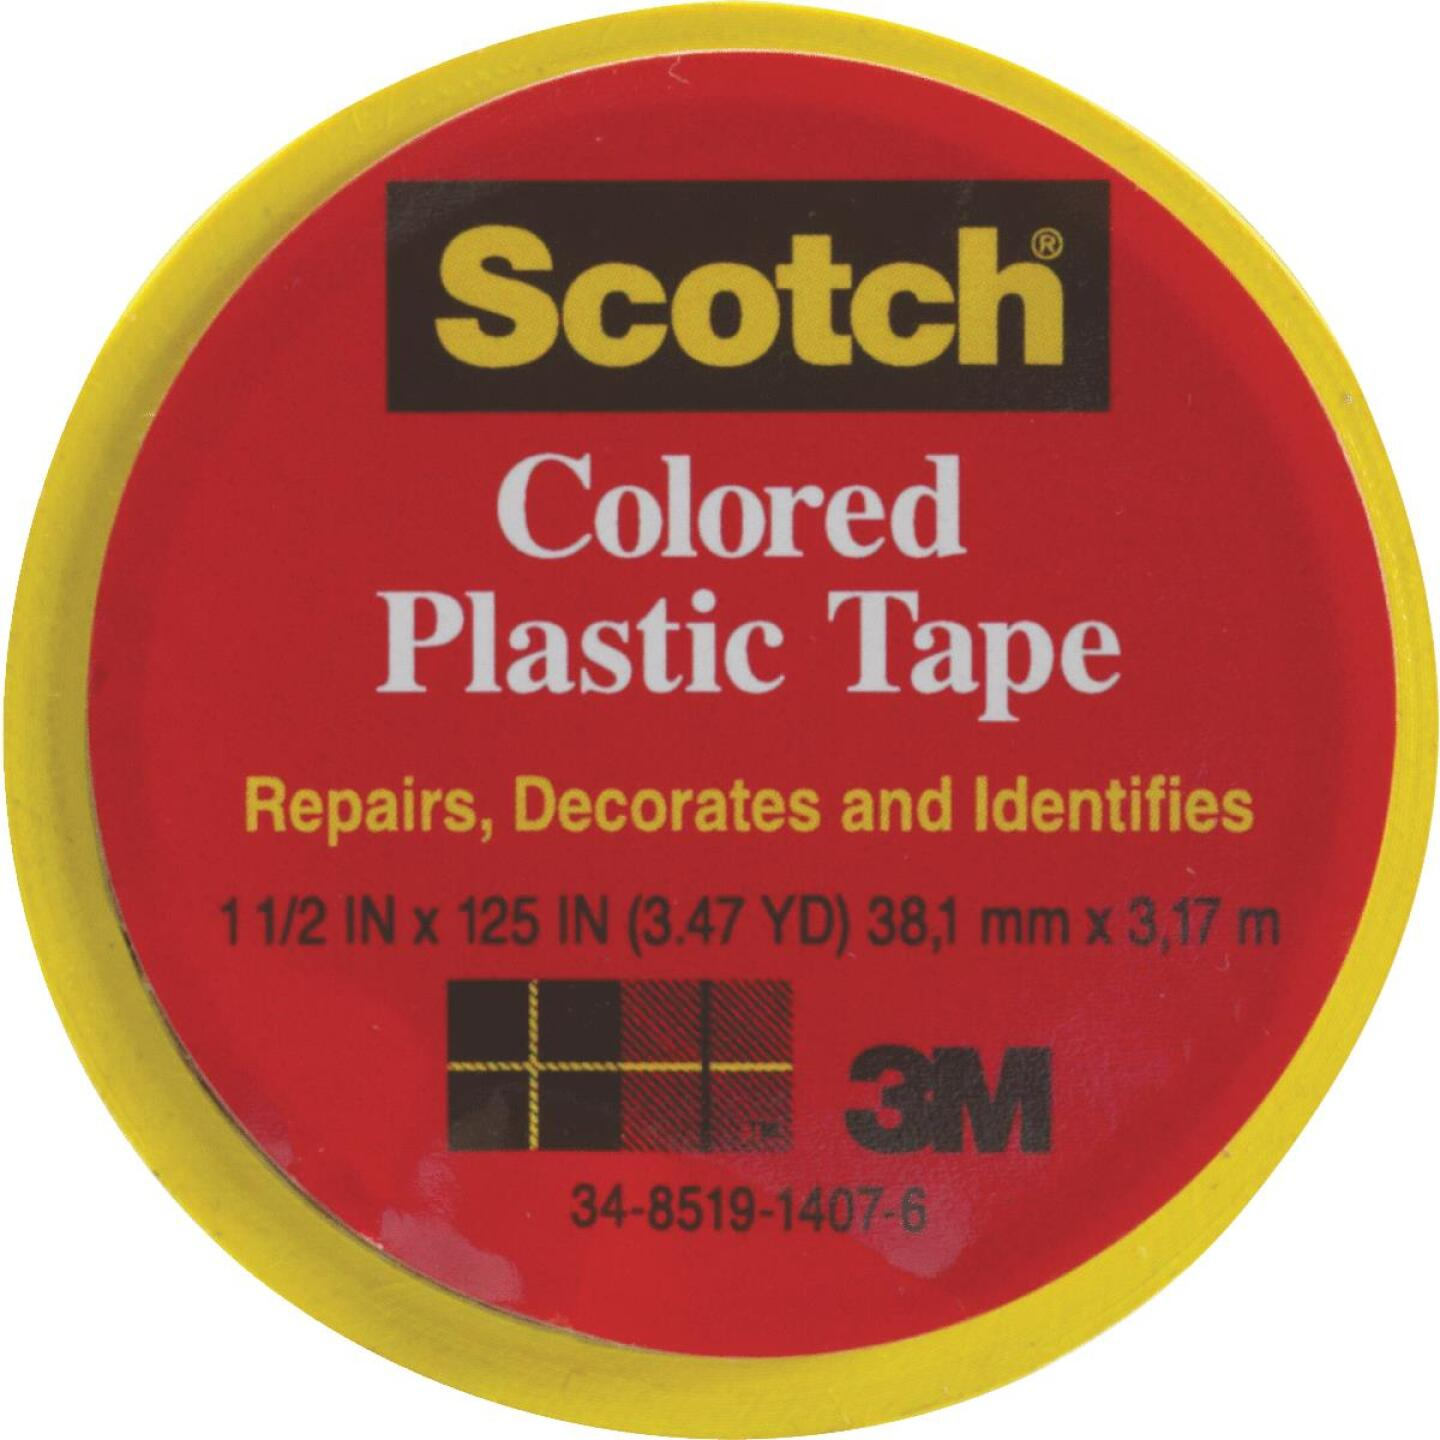 Scotch 1-1/2 In. Yellow Colored Plastic Tape Image 1